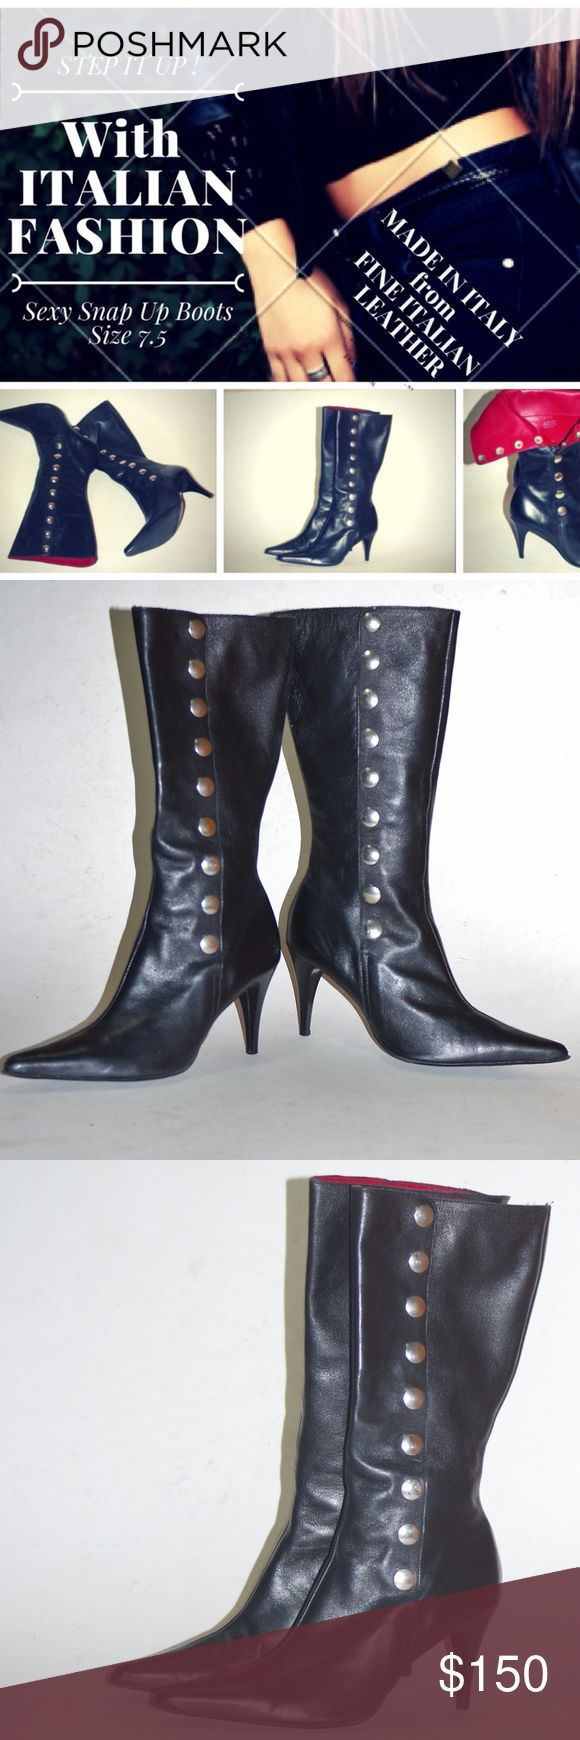 STATEMENT Black Leather Boots Glam Italy Heels 7.5 STATEMENT Black Leather Boots Glam Italy Heels 7.5 SMASHING STATEMENT STYLE! By Lady Shoes Made in Italy Fine Glove Tanned Italian Leather Stunning silver snaps all the way up! Unworn-No box or packaging (have been tried on and walked in, if they fit me they wouldn't be going anywhere!) Sexy Structured Italian Designer Fashion Boots Stiletto Heels Partial tag still on inside and bottom of soles (paper) SMASHING STATEMENT STYLE! Italian Lady…